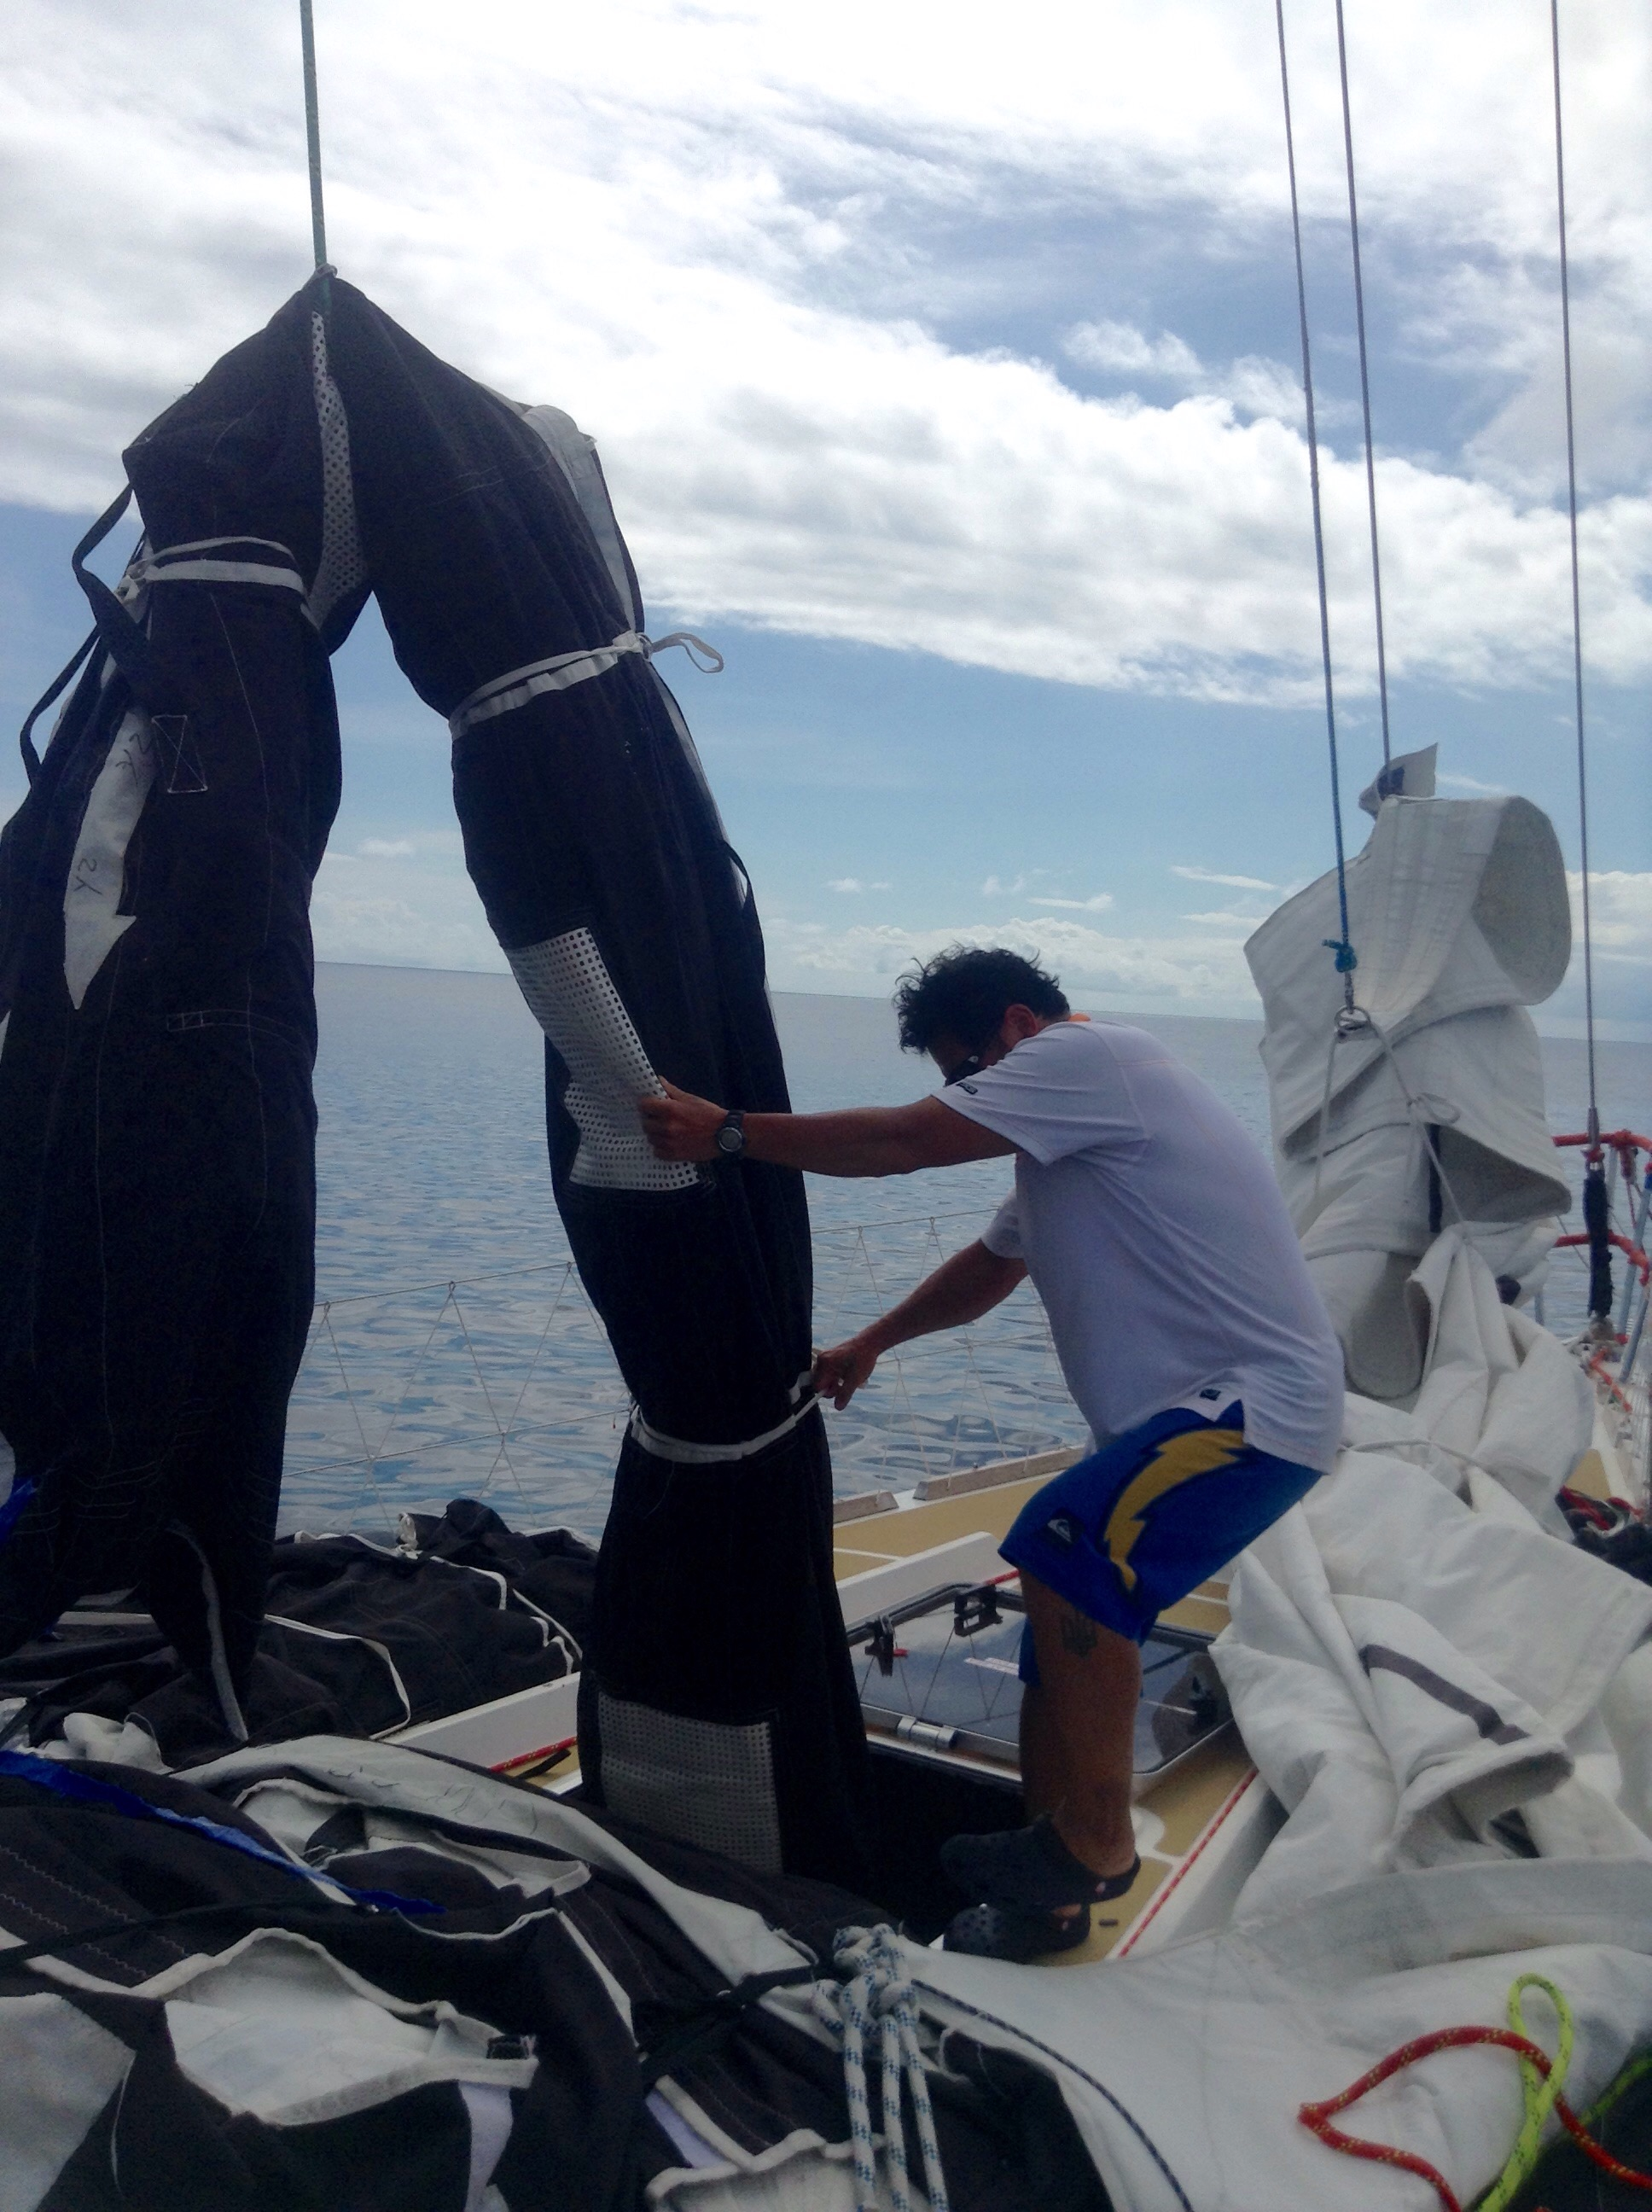 Han used a halyard to help muscle the sails back Into the sail locker.